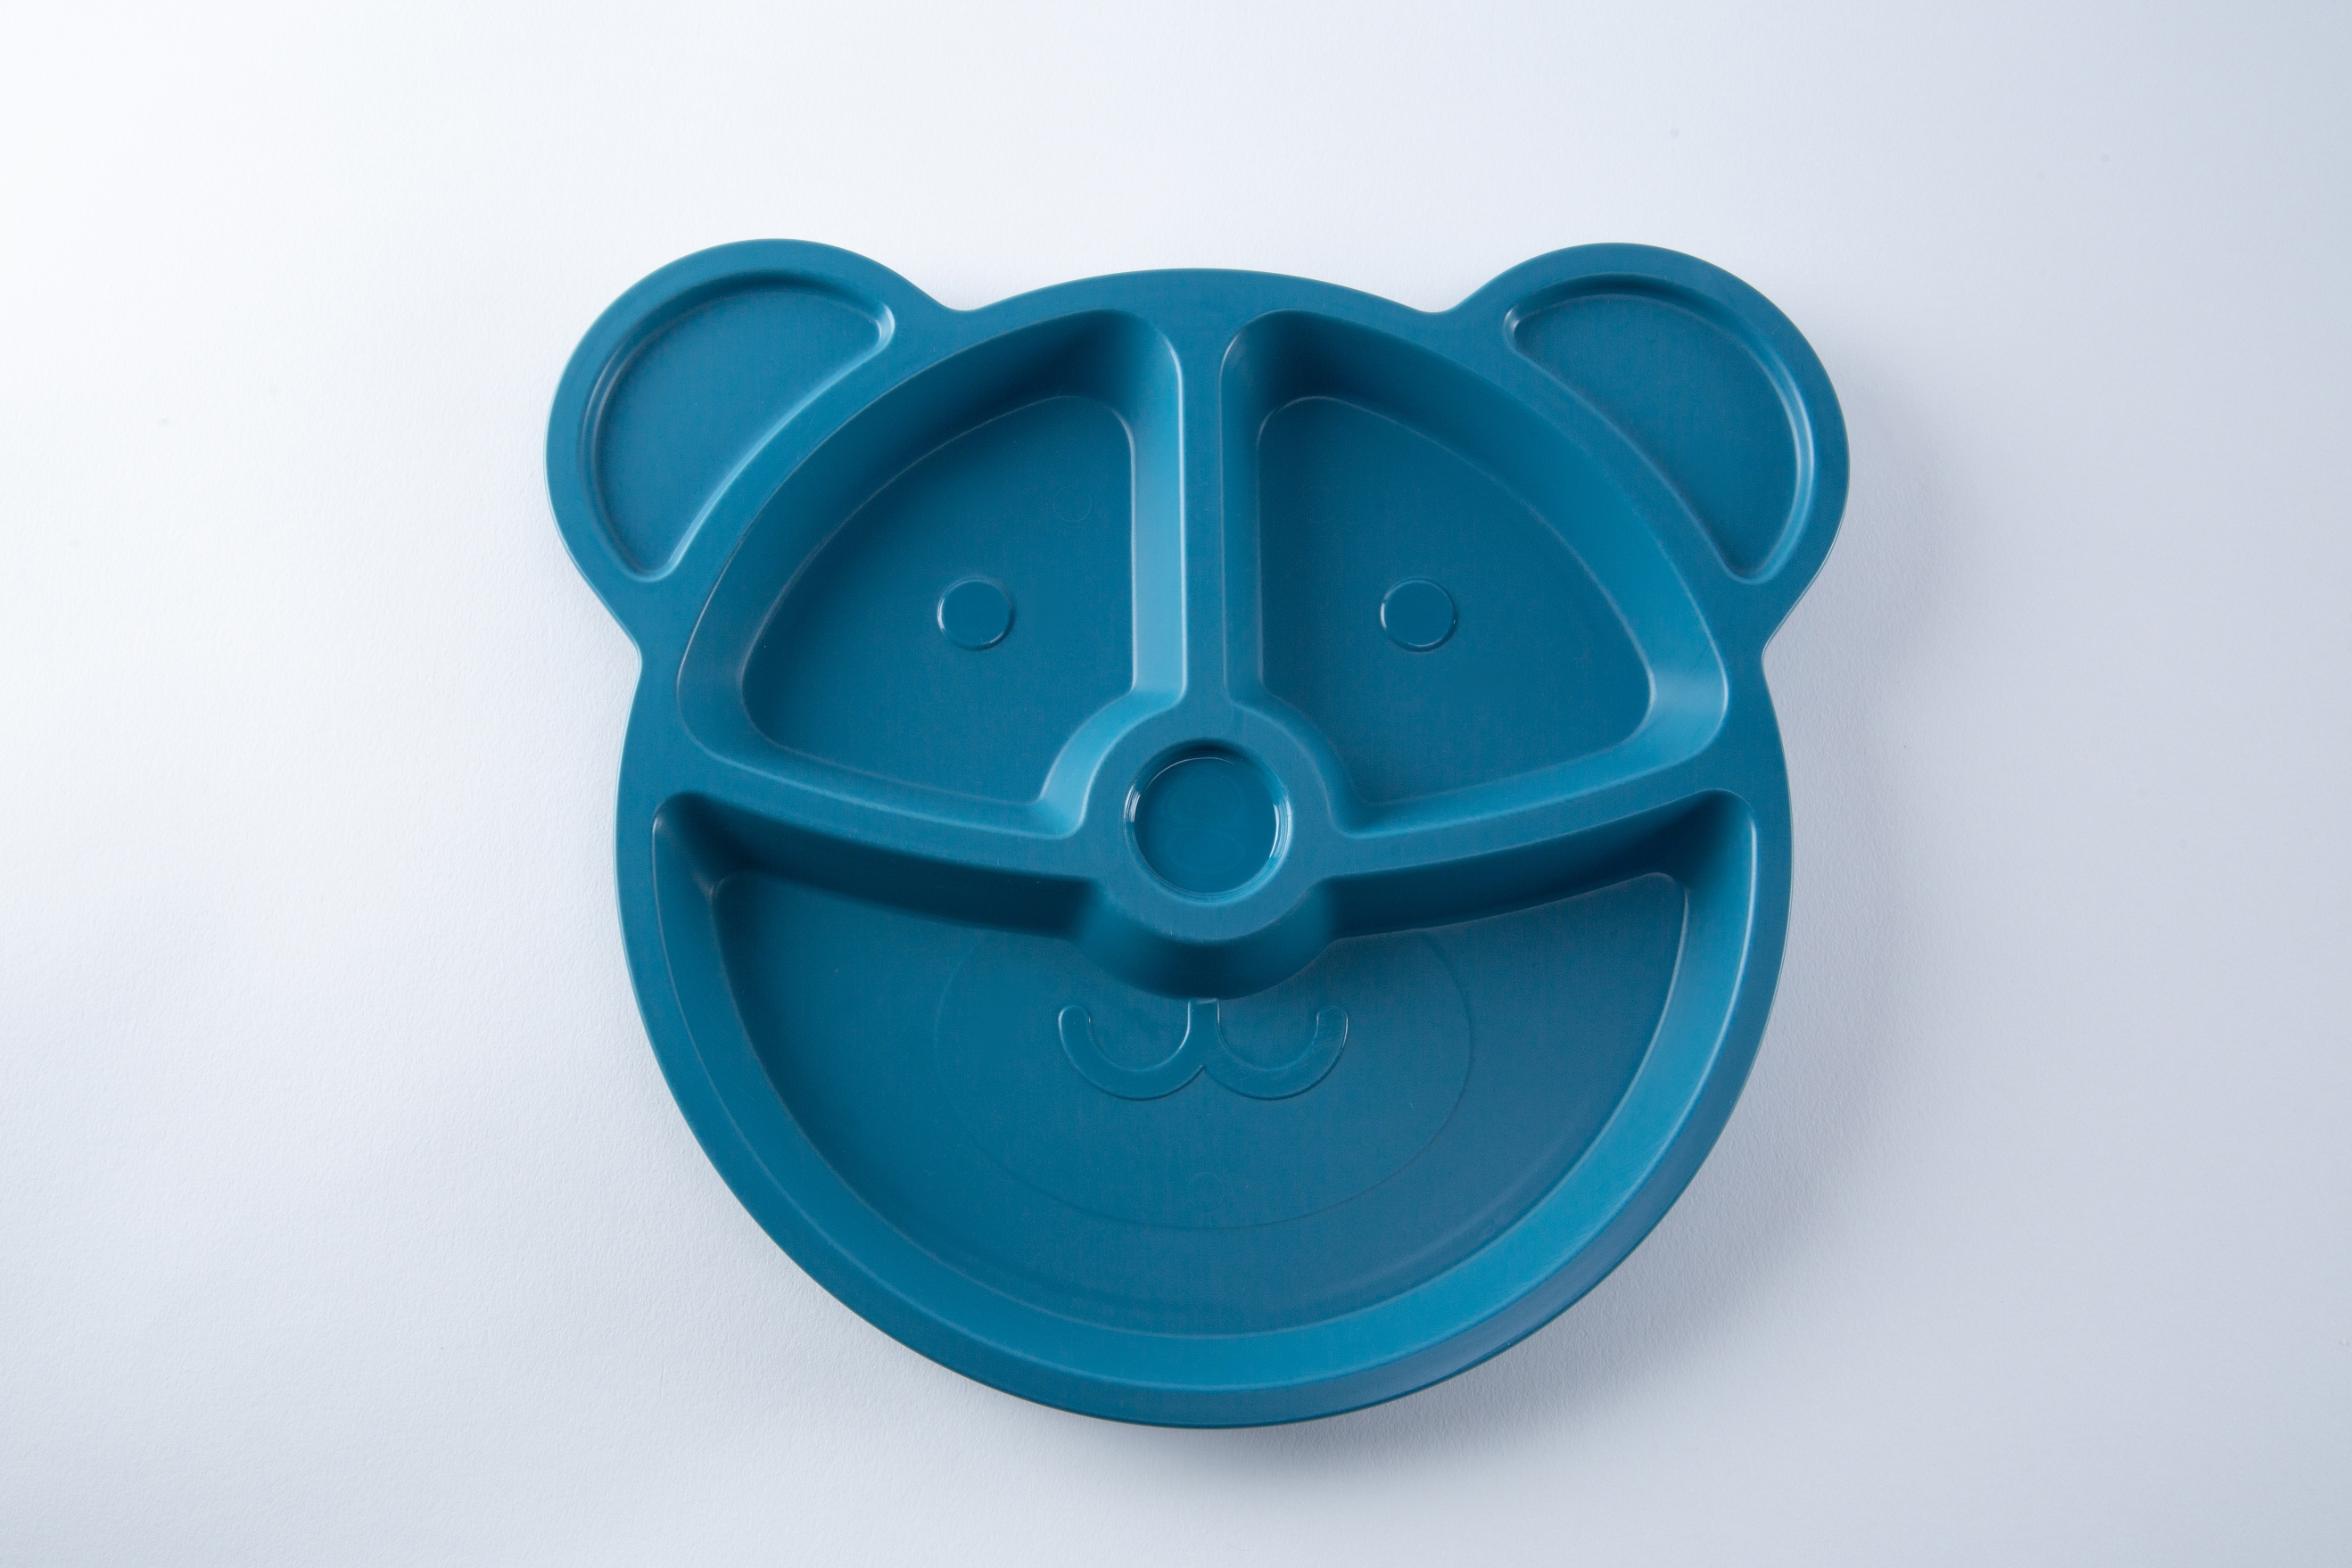 Your Zone Plastic 10 In Bear Shape Divided Tray - Blue Color